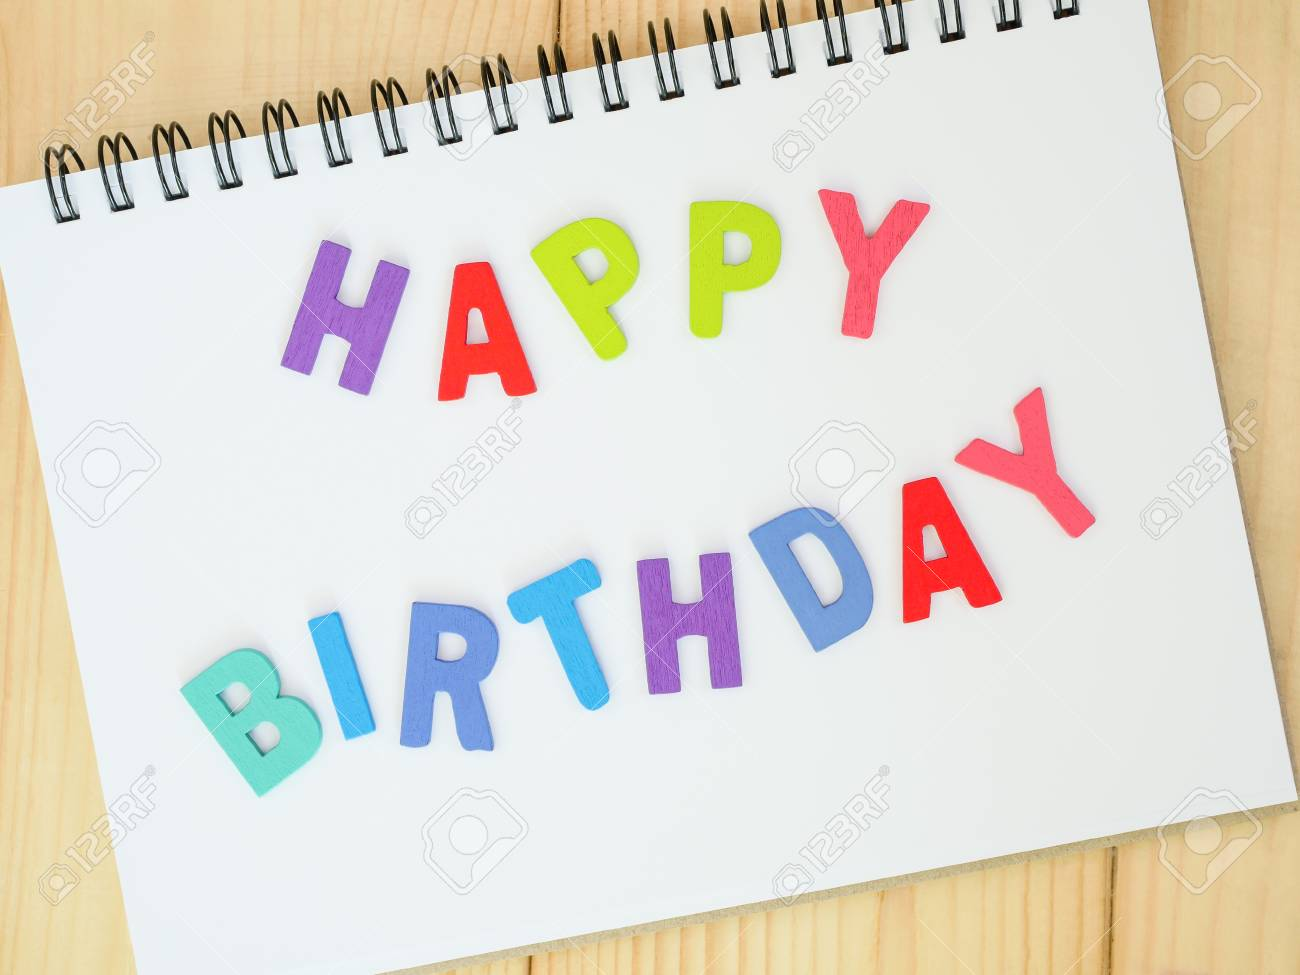 Wooden Word Spell Happy Birthday On Notebook With Wood Background Stock Photo Picture And Royalty Free Image Image 56153913